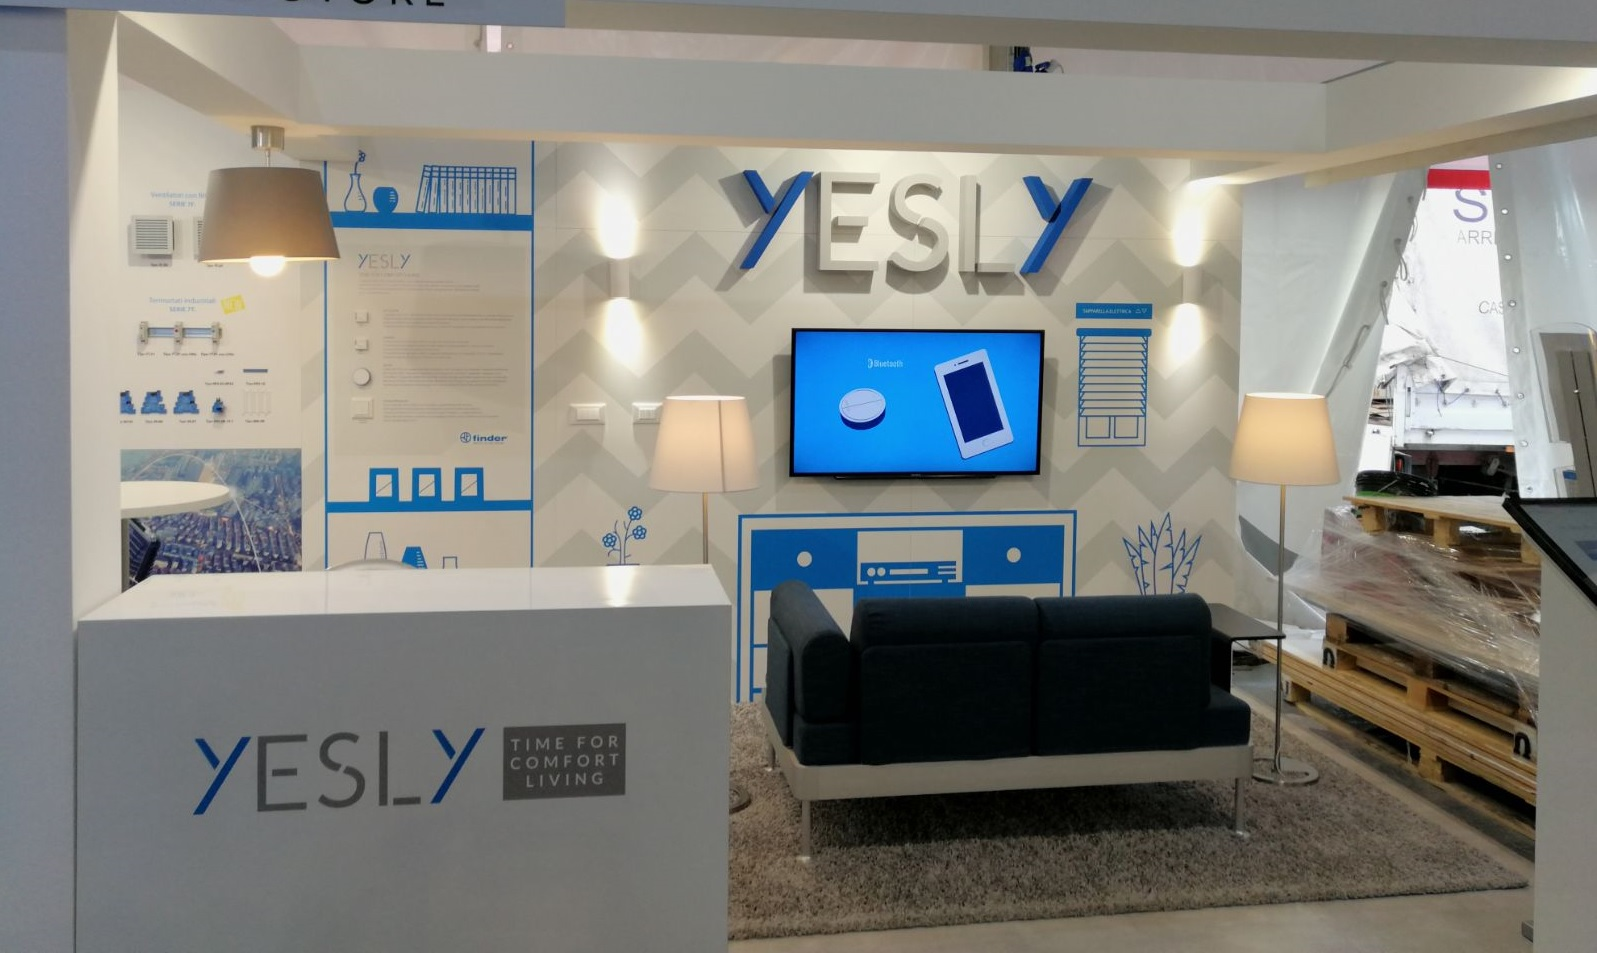 elettrica 2018 yesly stand finder 225-227